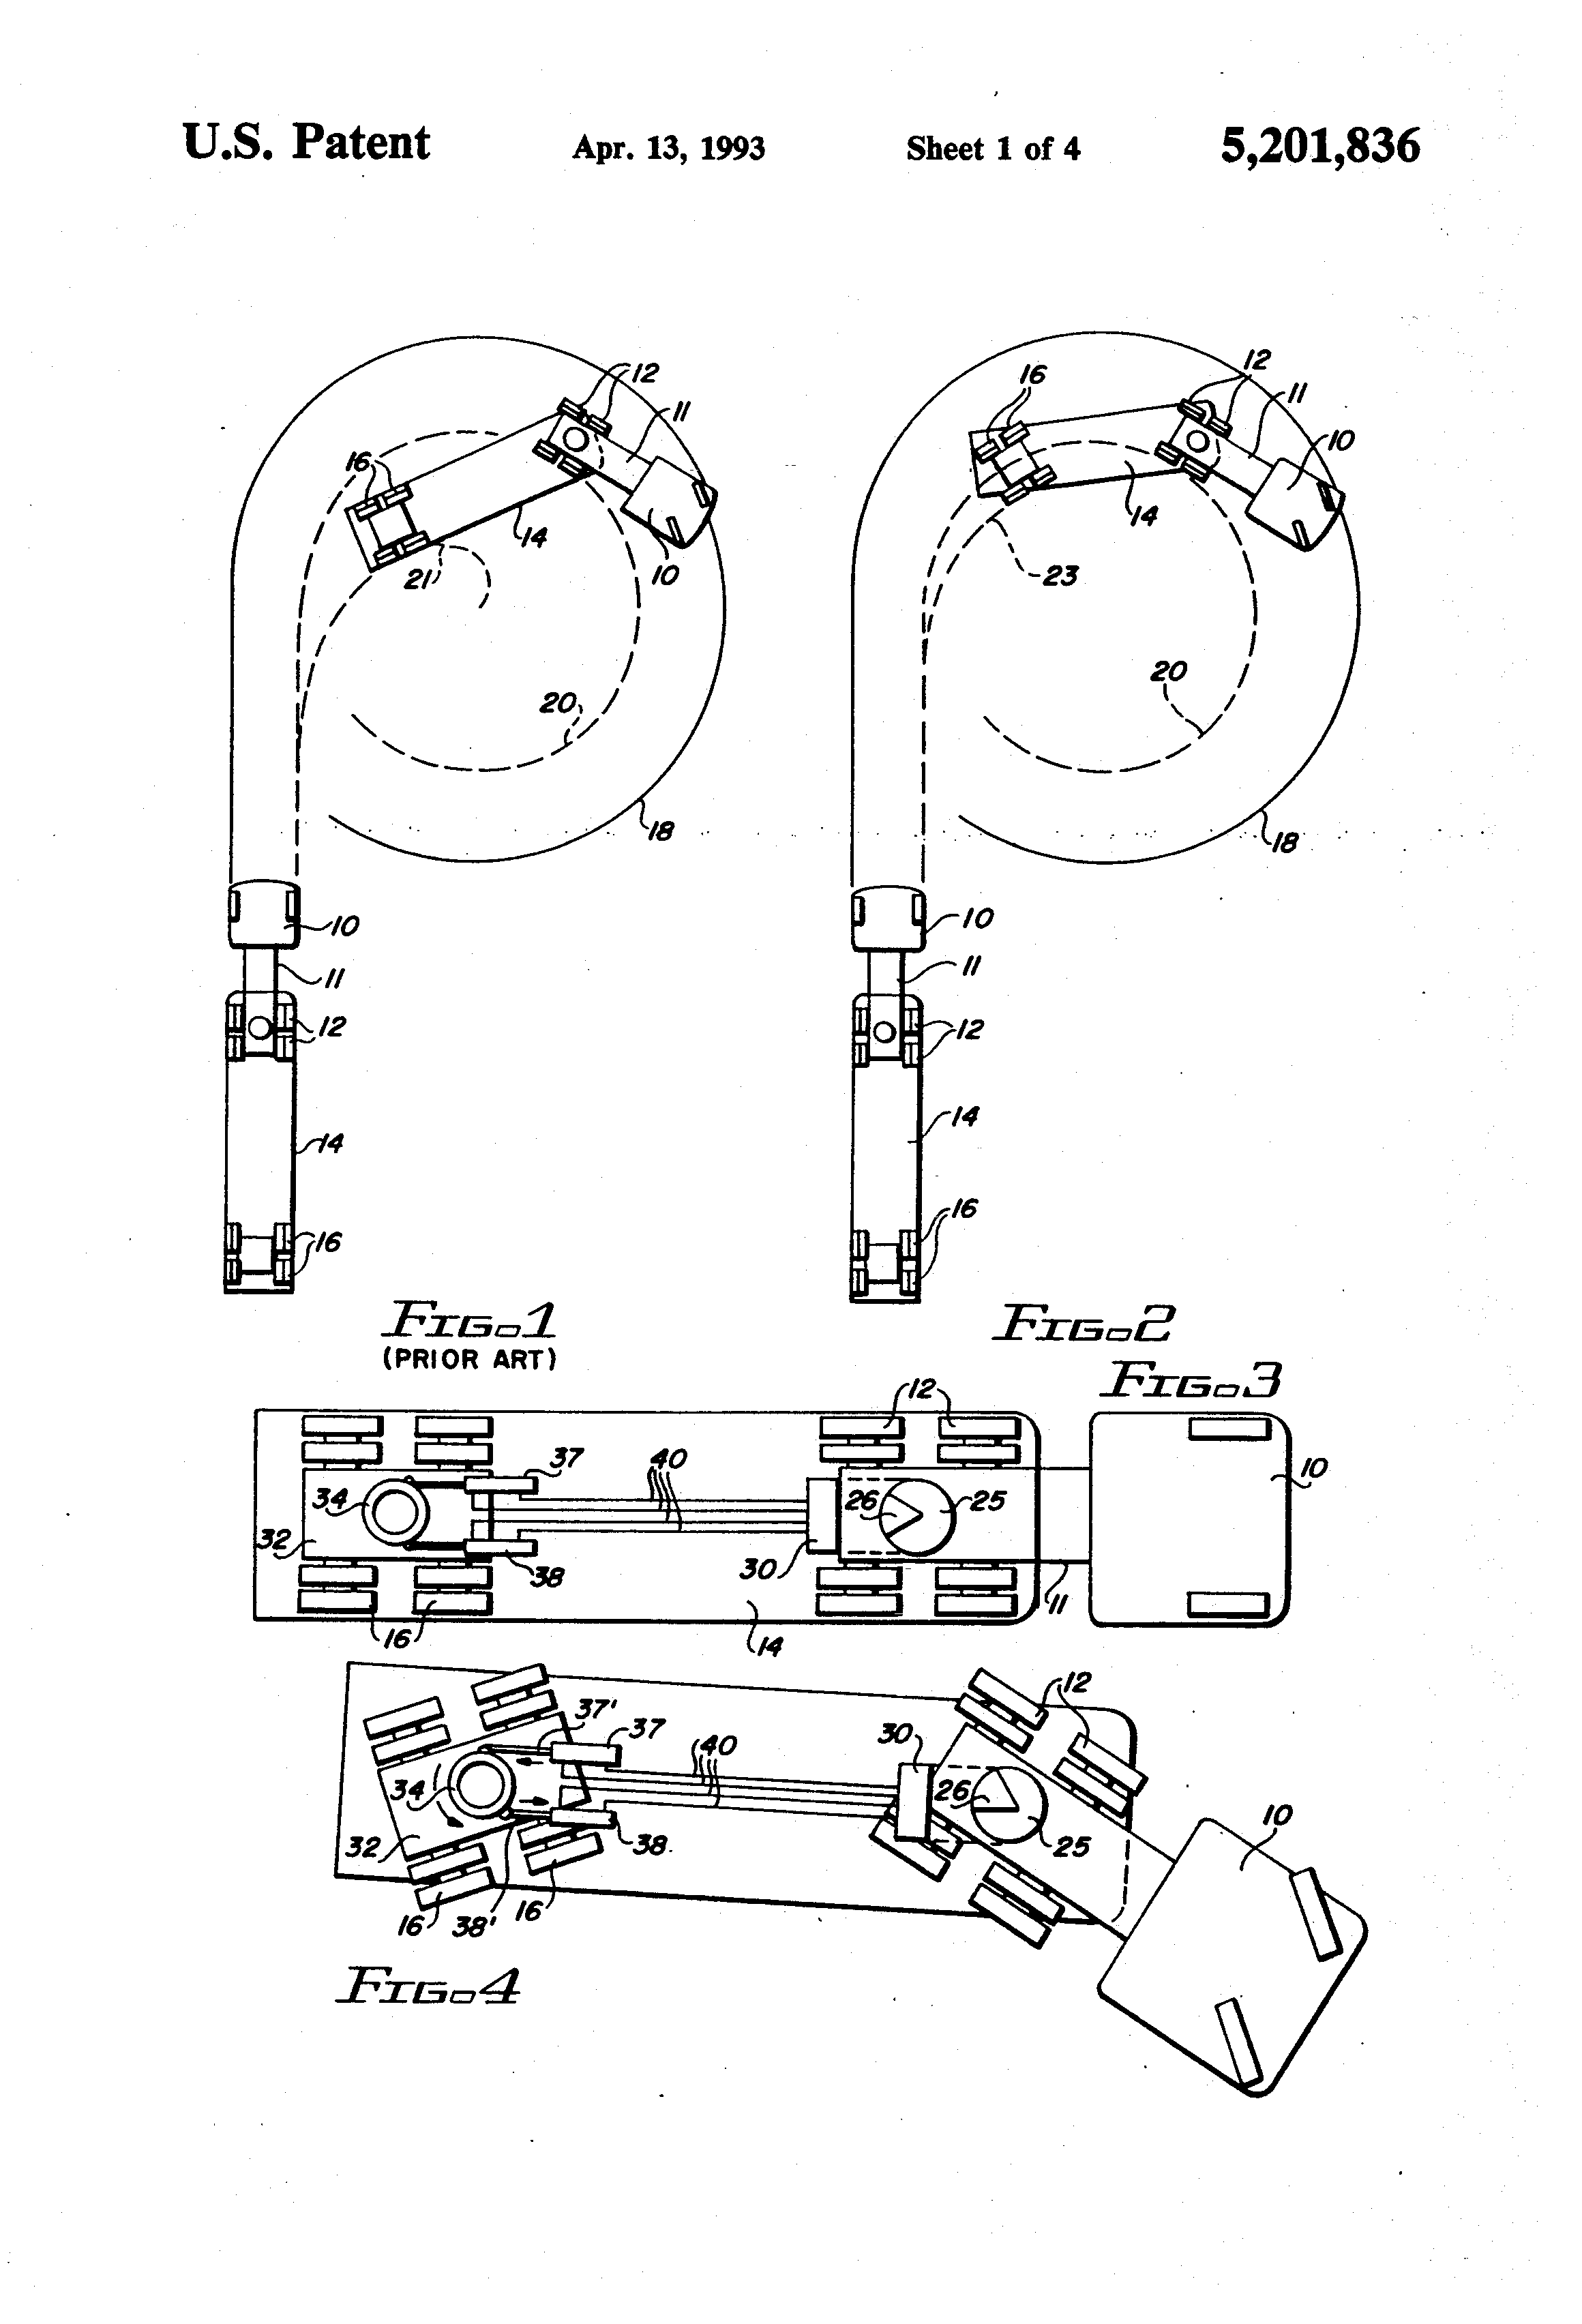 P 0900c152801c0c54 likewise Chute Rotation Group 2991511 besides Gear Case in addition T19474991 Replace rear timing belt kia carnival v6 additionally Kia Sorento Engine Diagram Timing. on gear rotation diagrams